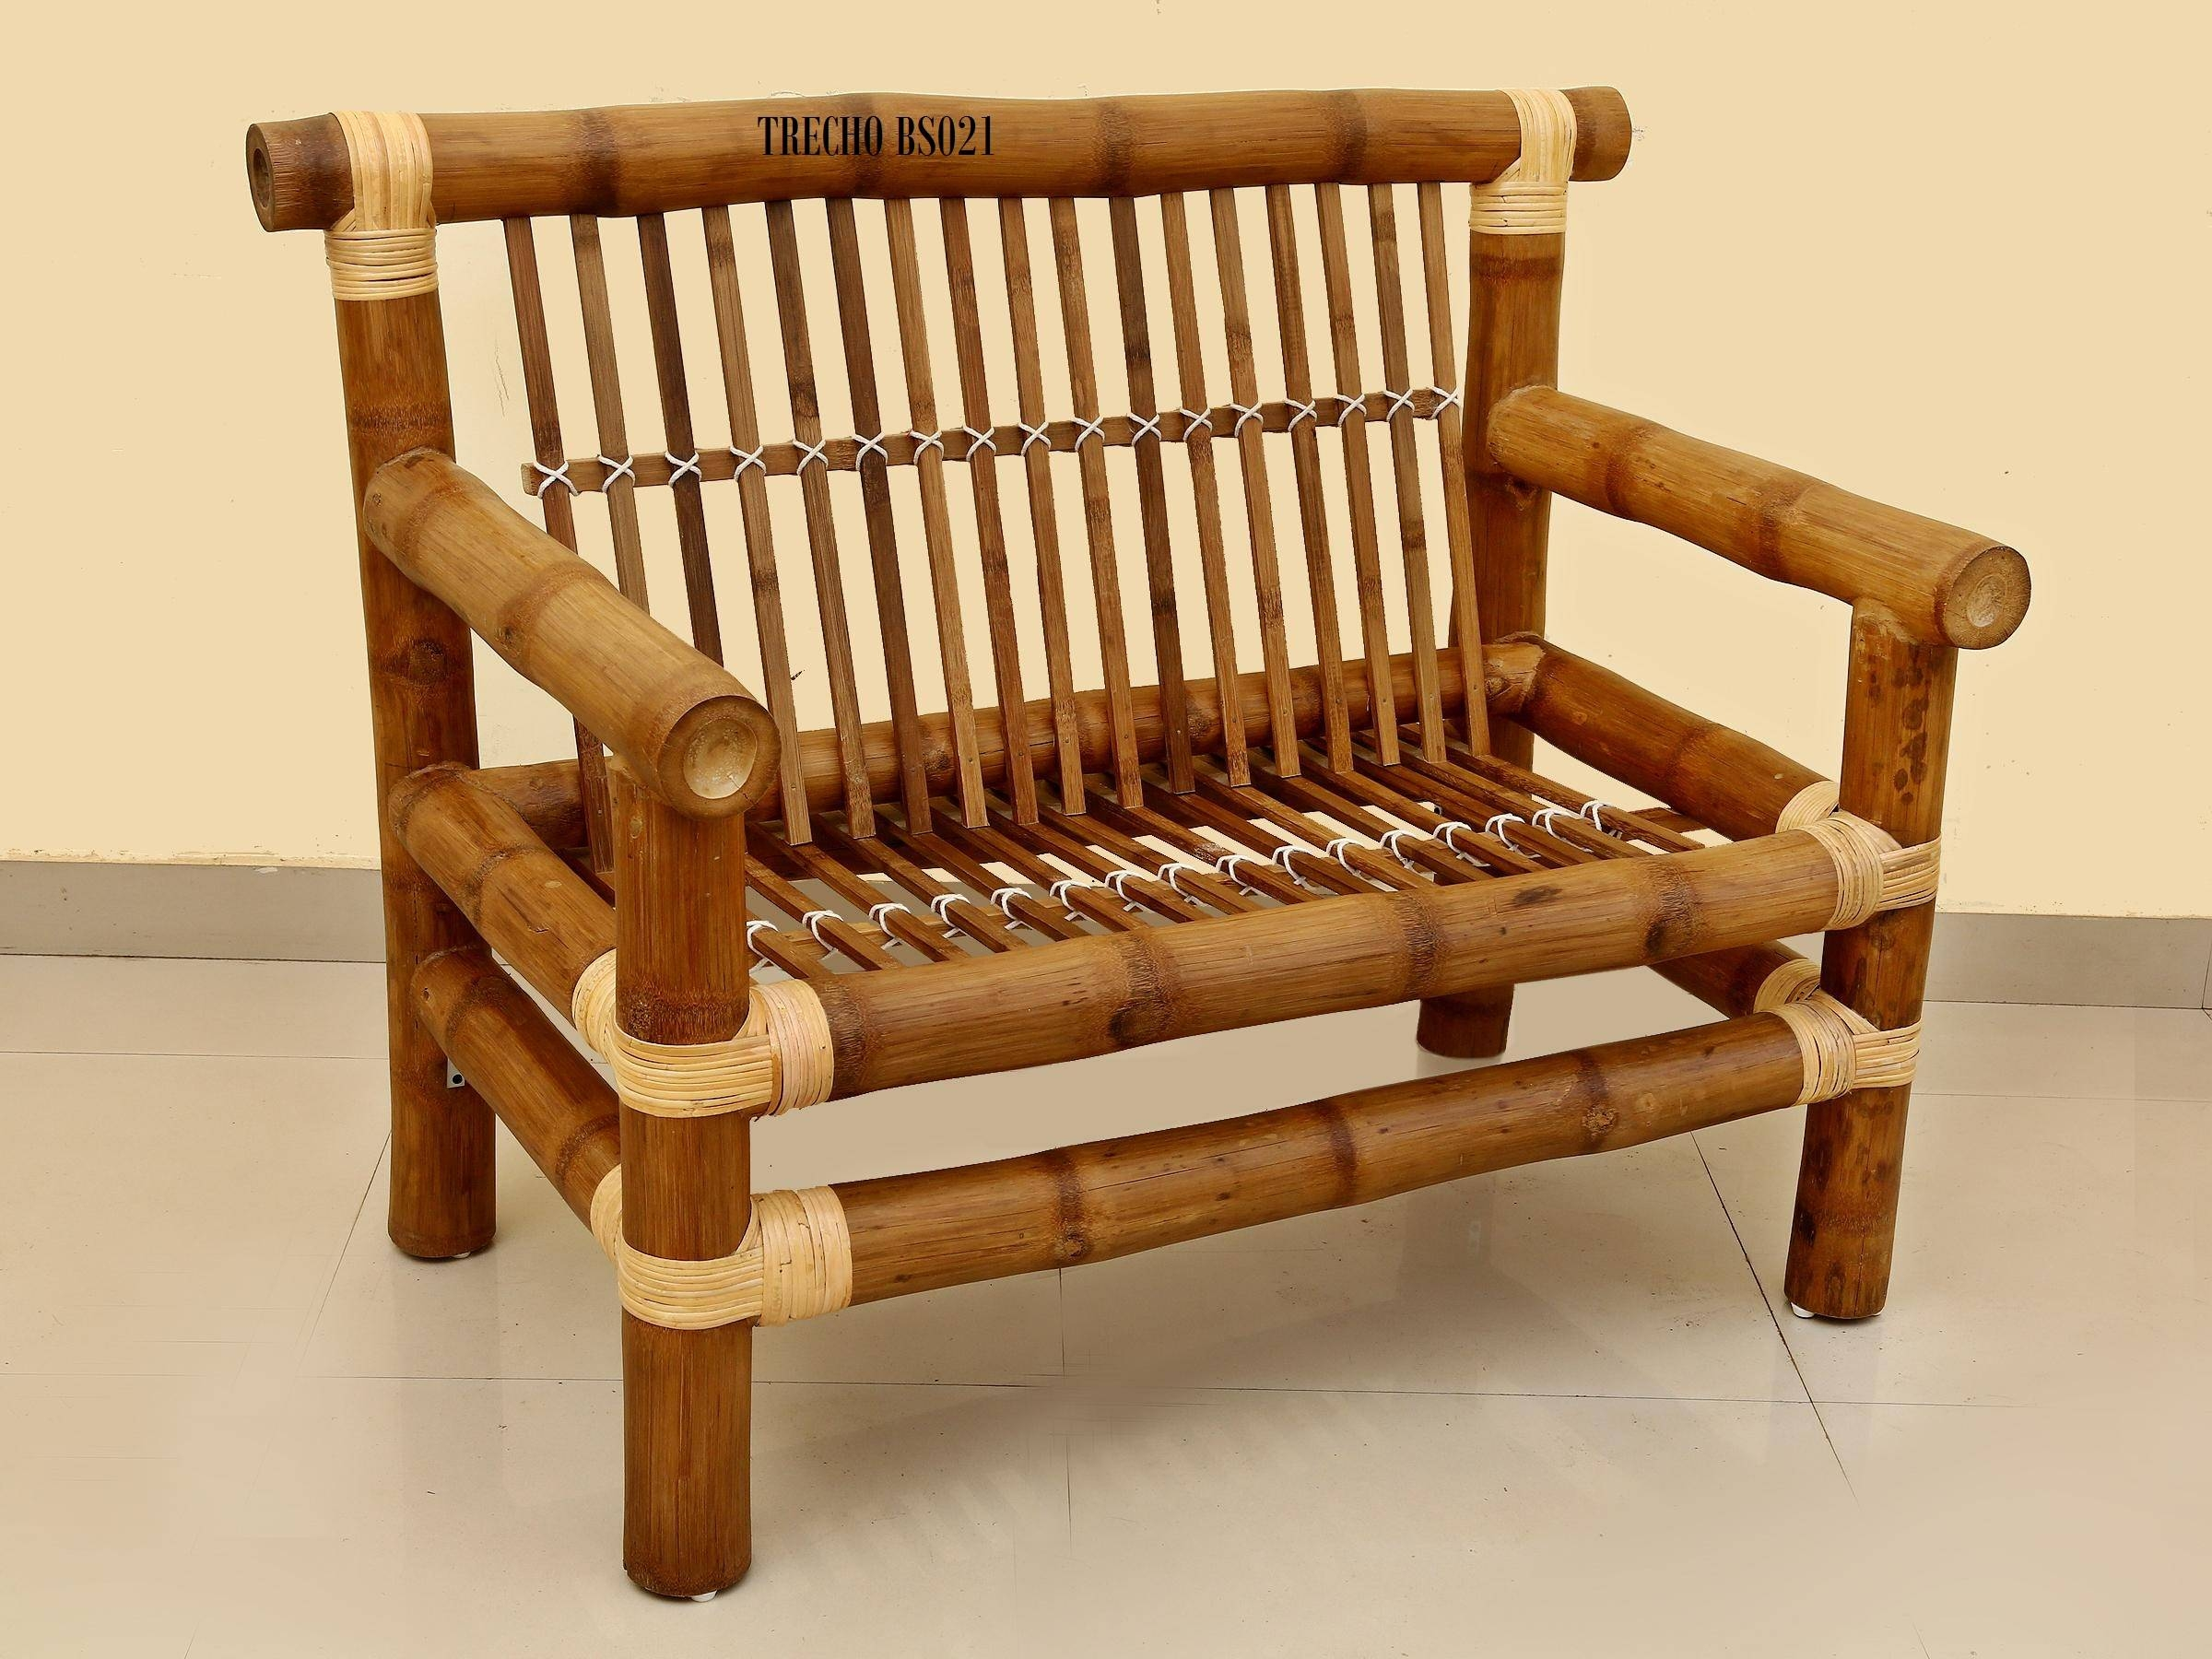 Bamboo Cane Furniture Buy Online India - Suppliers And Manufacturer regarding Bambo Sofas (Image 2 of 30)